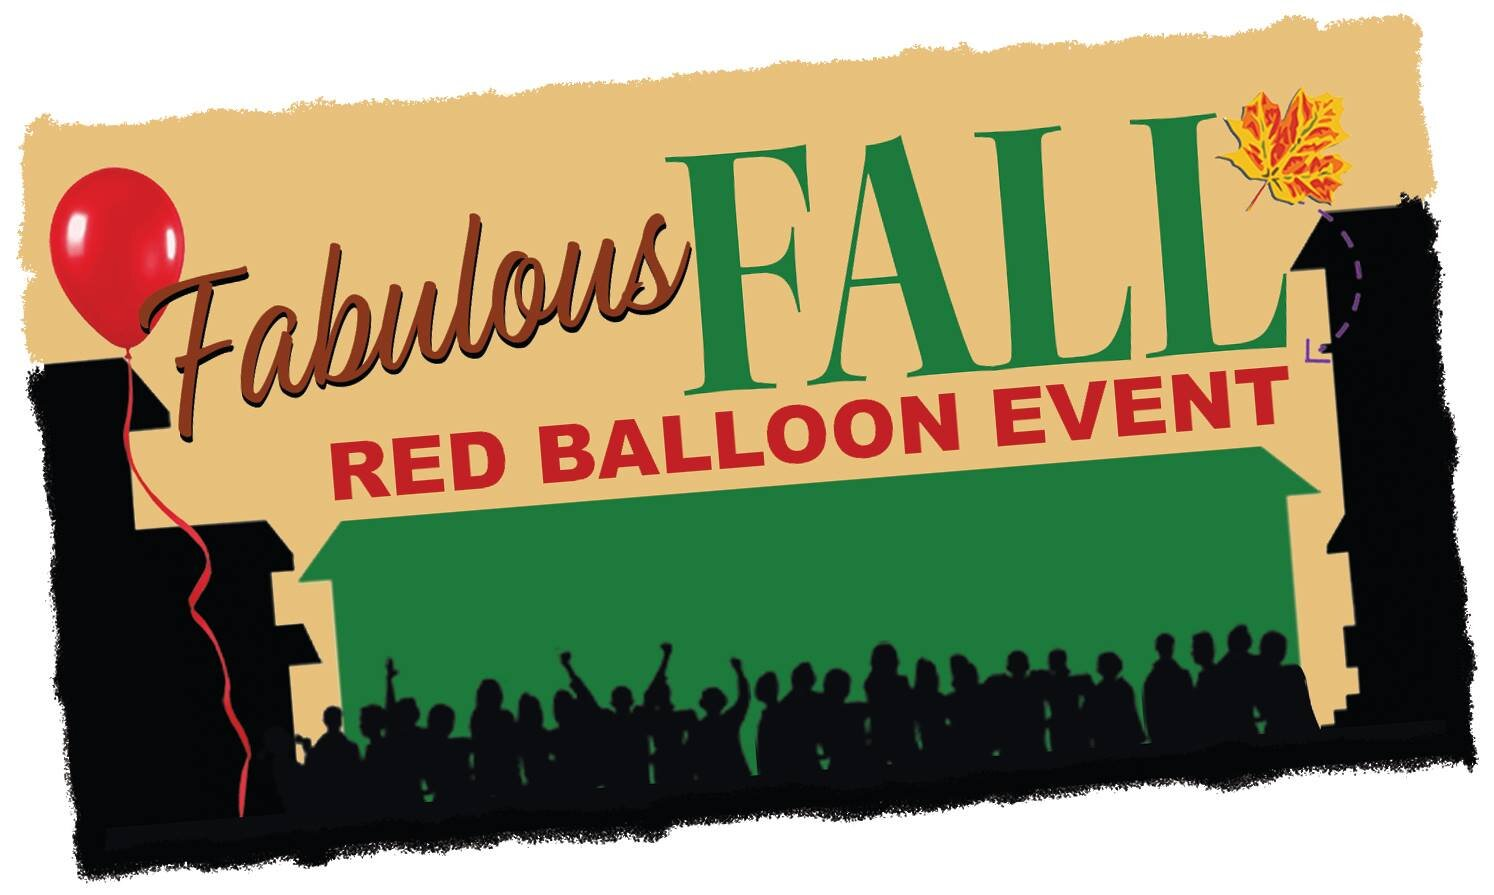 red balloon event